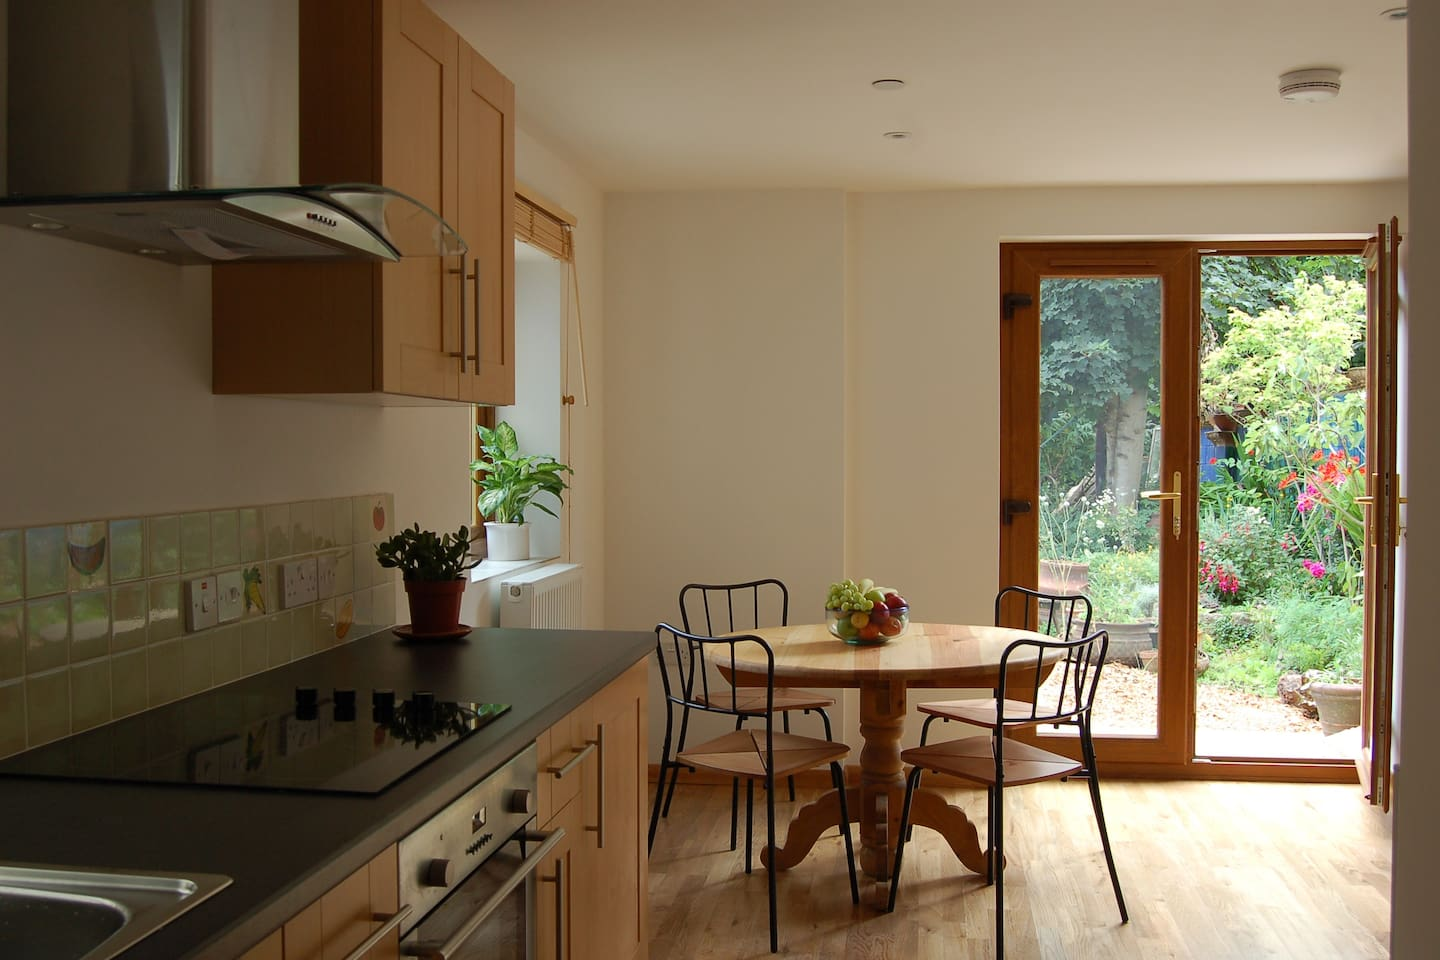 Fully fitted kitchen, dining area, and lounge overlooking colourful garden and a very friendly gardener (my mum!)